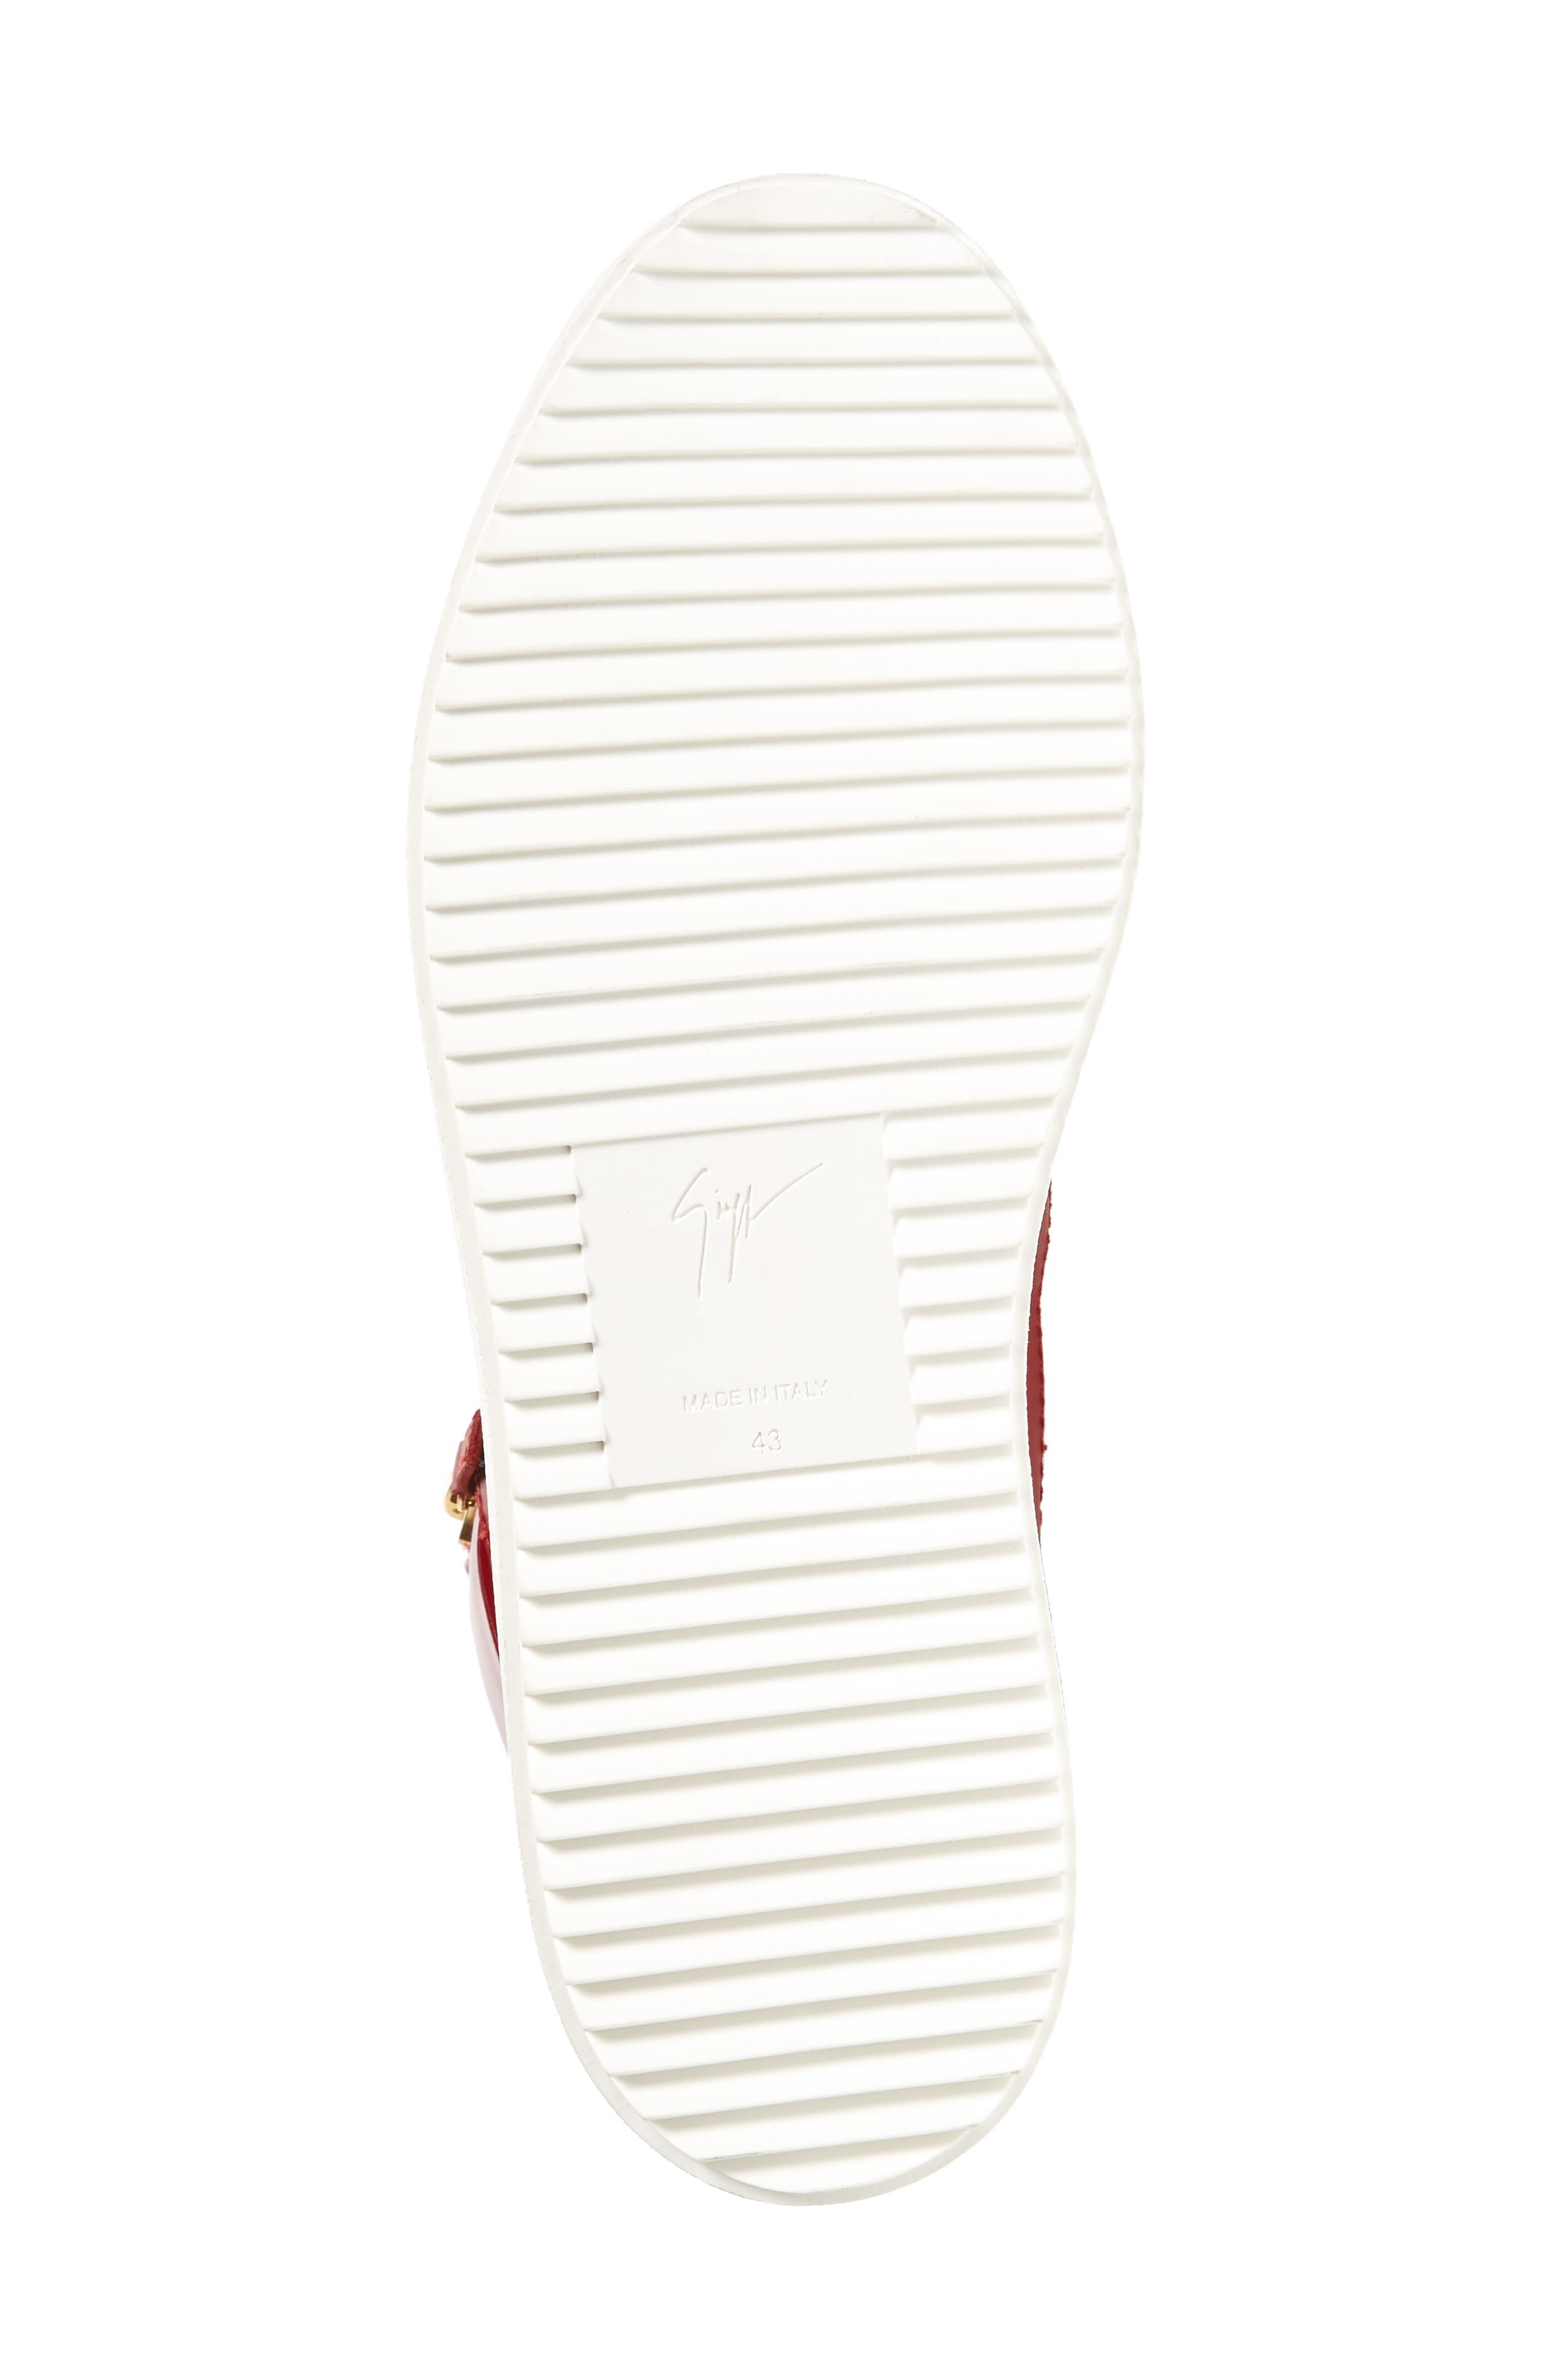 Double Zipper Mid Top Sneaker,                             Alternate thumbnail 6, color,                             Red W/ White Leather